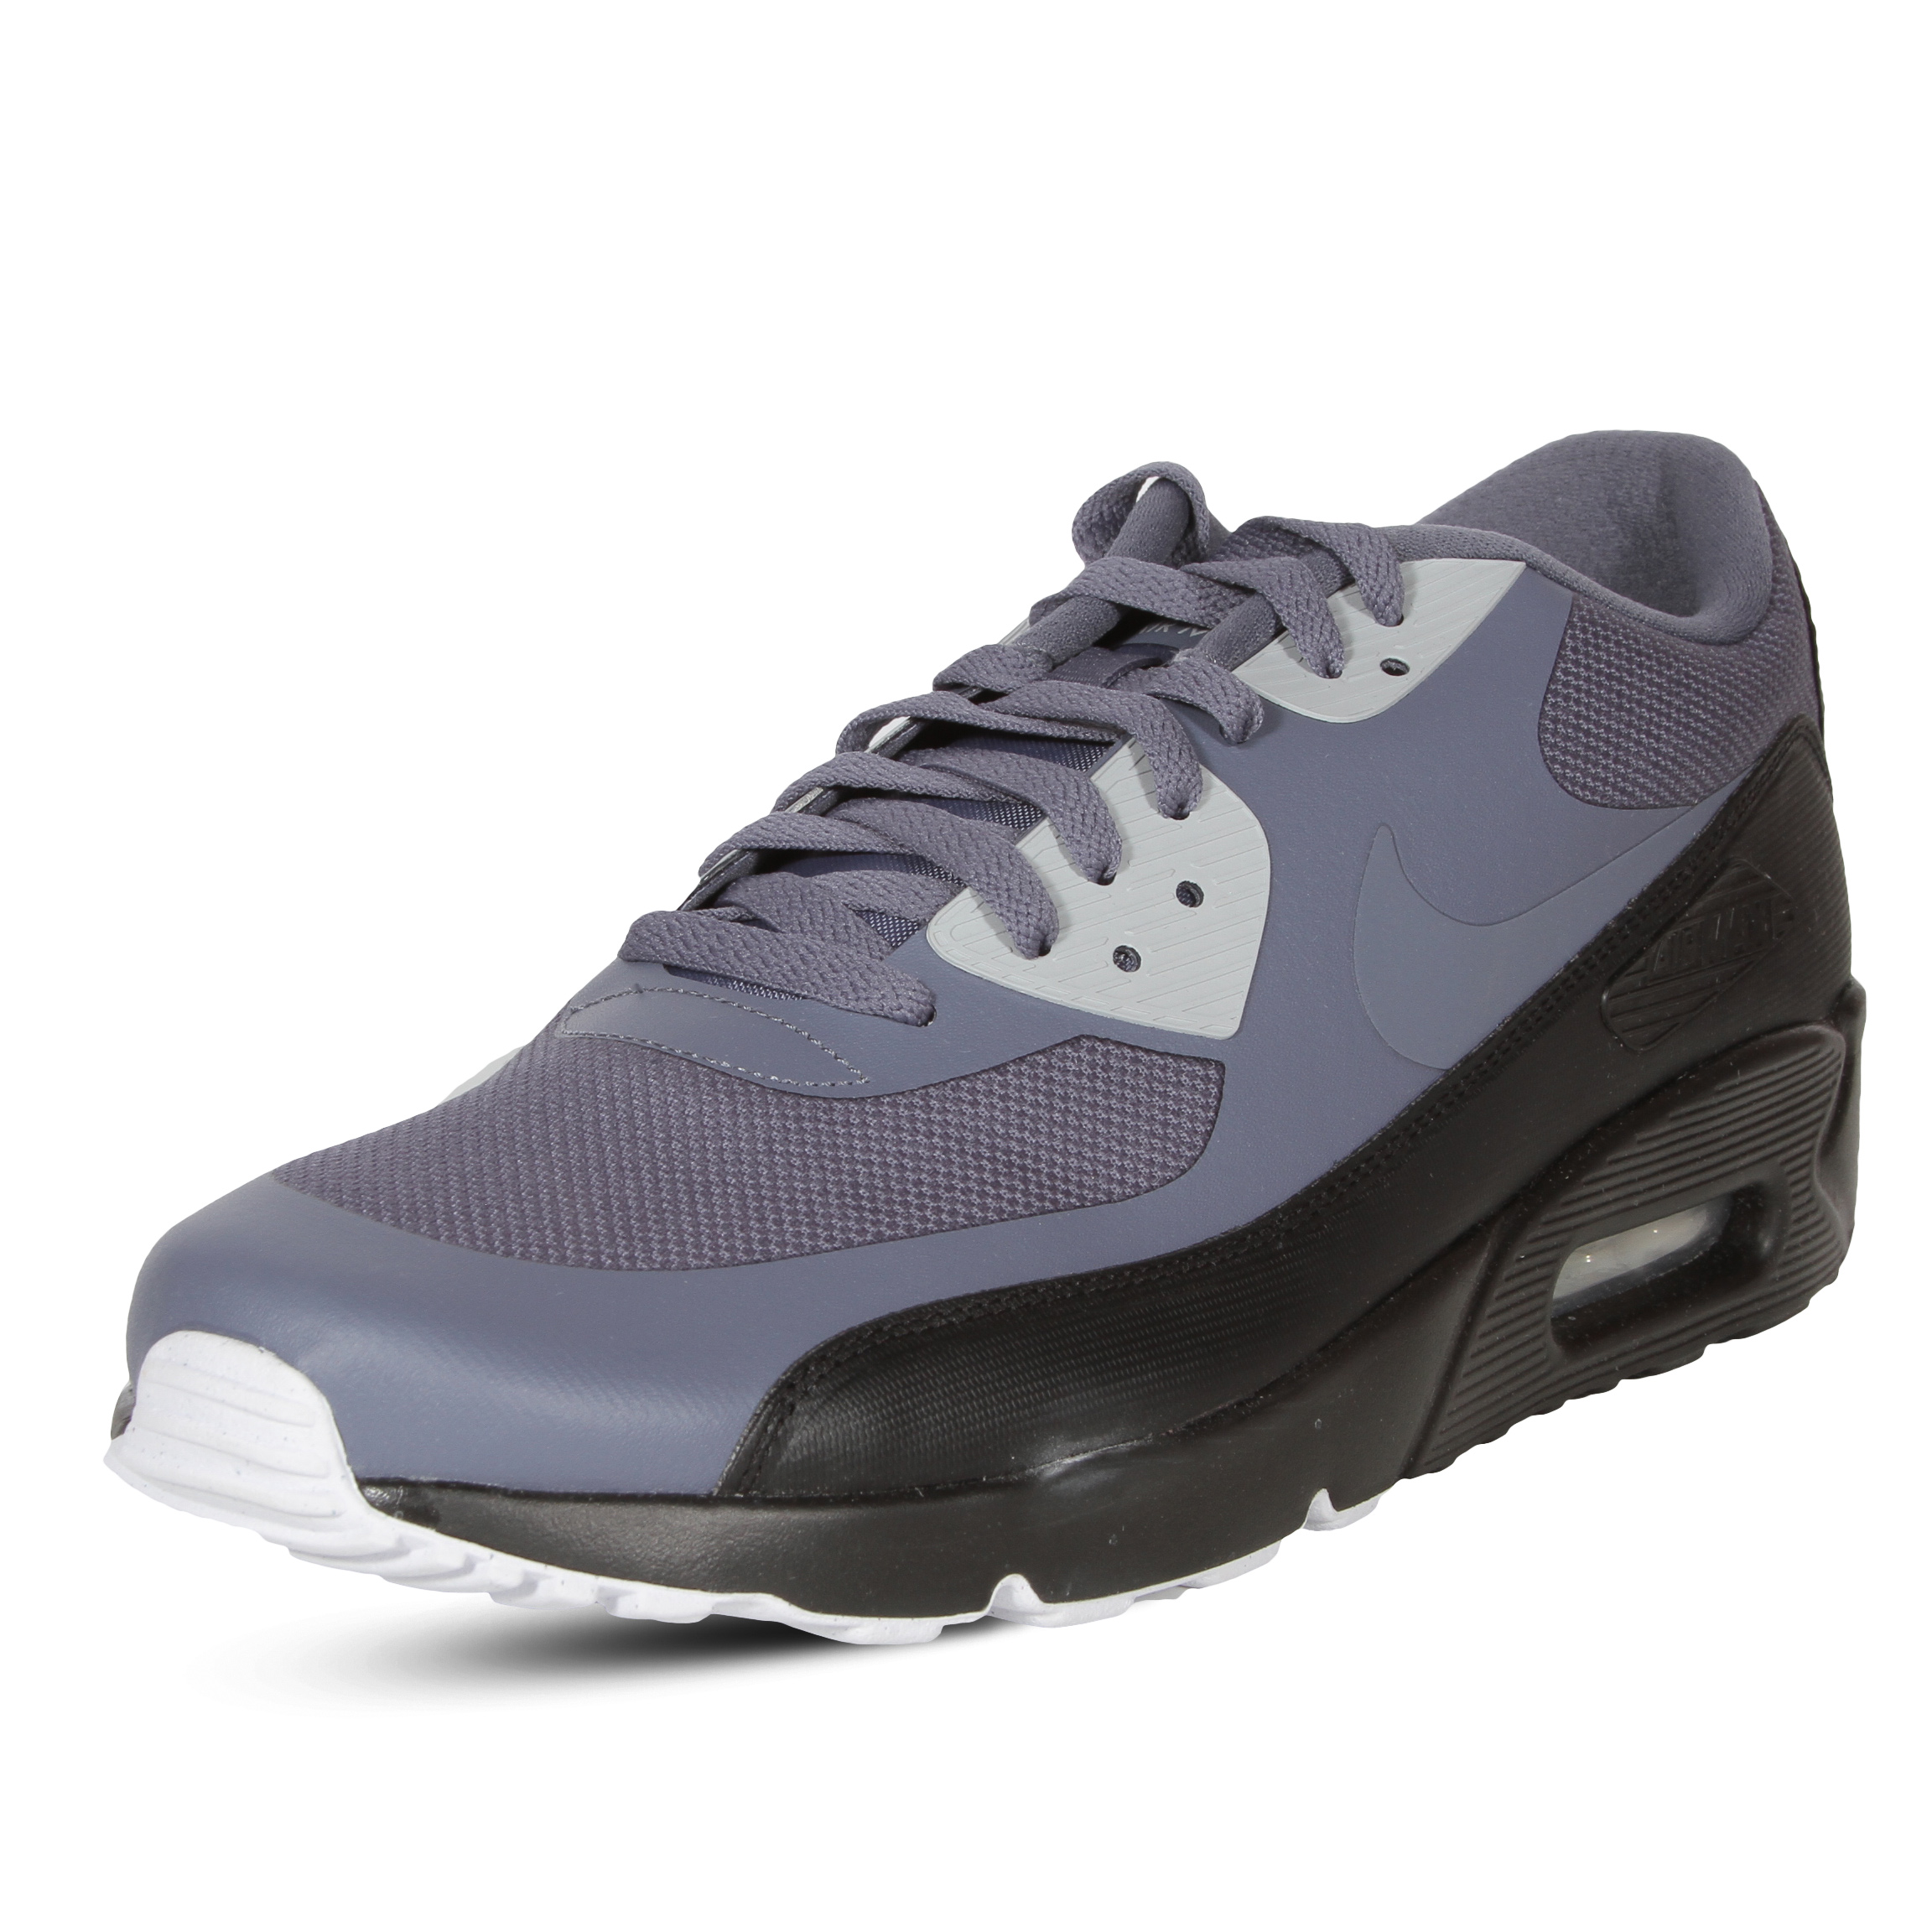 Hommes Nike Air Max 90 Ultra 2.0 Essential Running Chaussures 875695-012